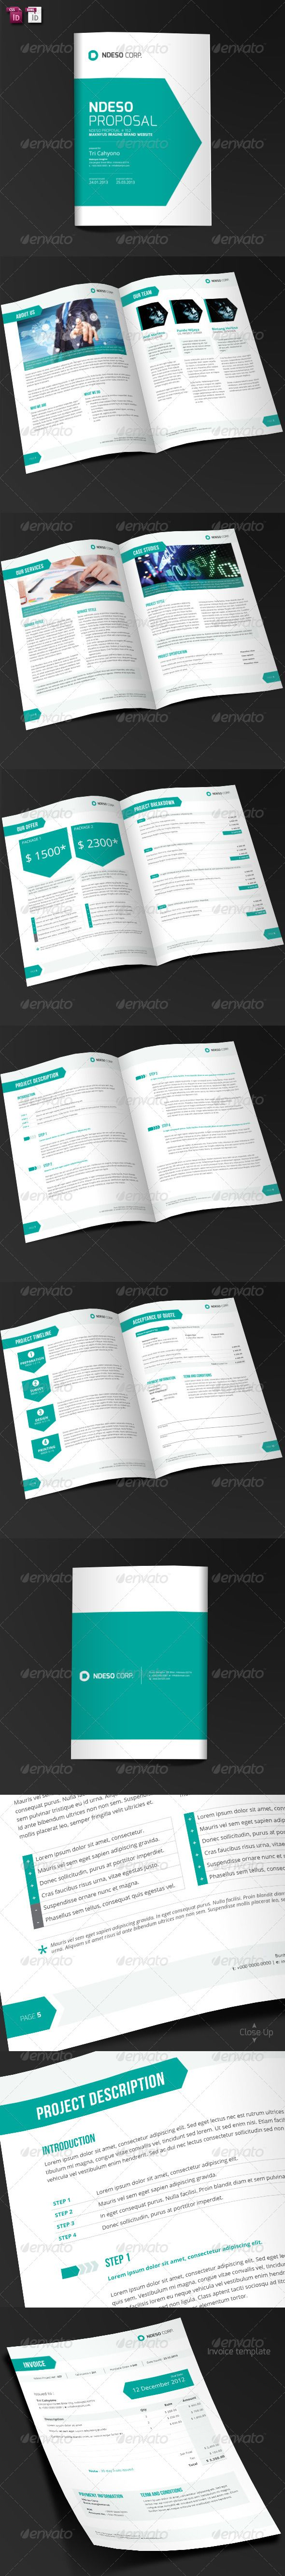 ndeso proposal and invoice template